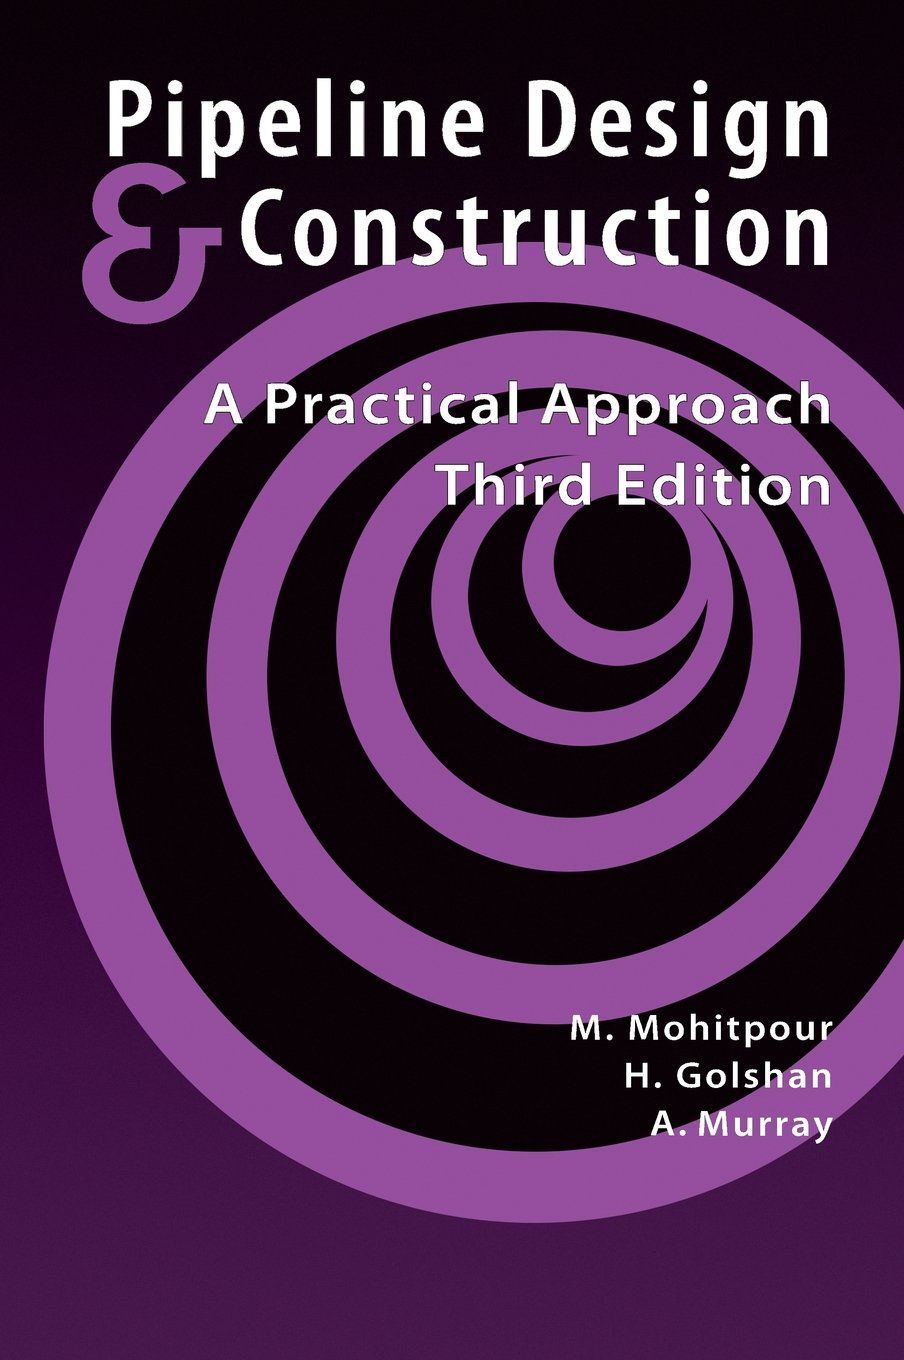 Pipeline Design & Construction: A Practical Approach, Third Edition  (Pipelines and Pressure Vessels): M. Mohitpour, H. Golshan, A. Murray:  9780791802571: ...